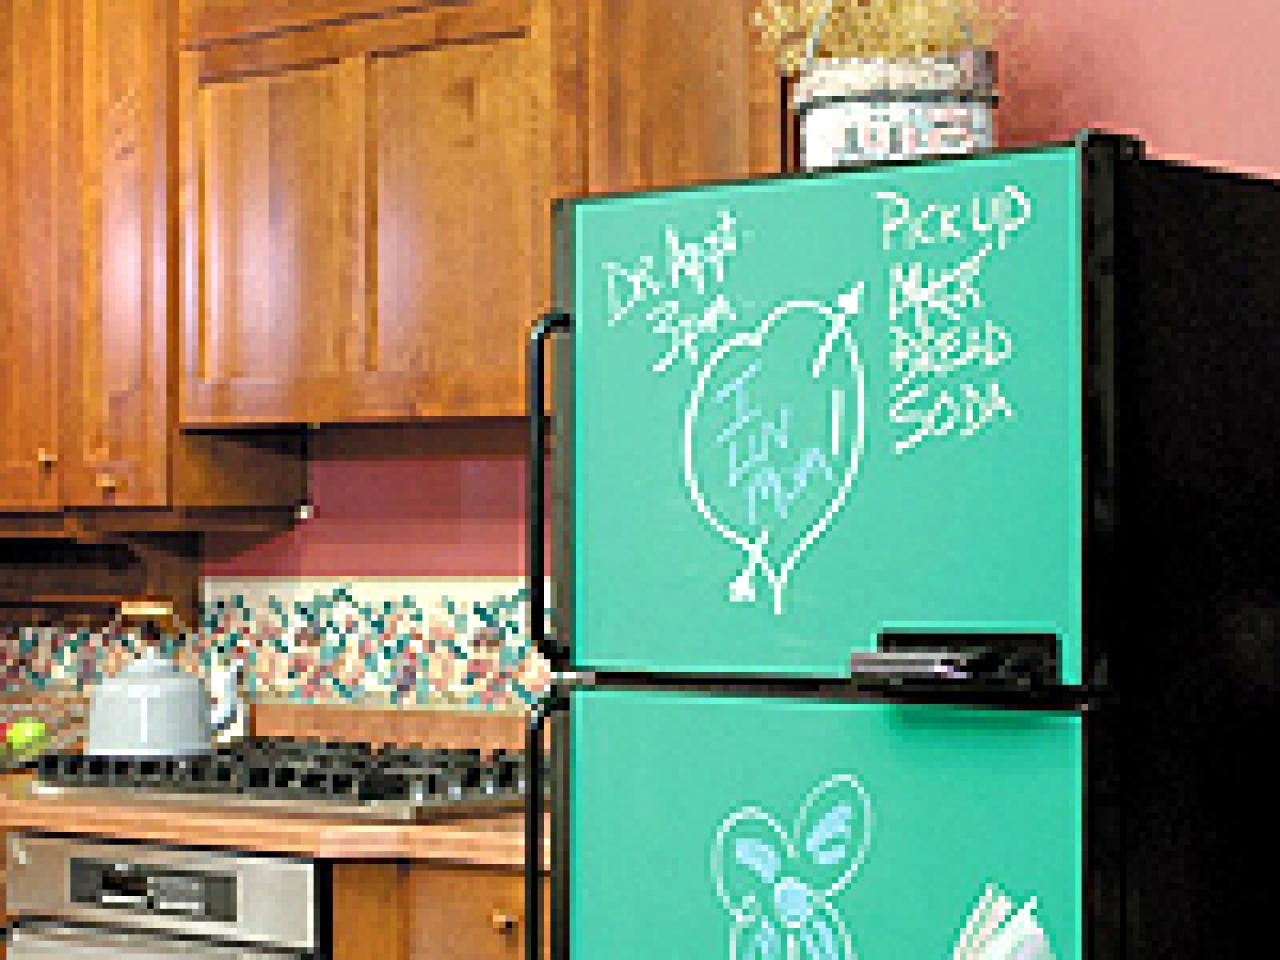 A Facelift for the Fridge | HGTV